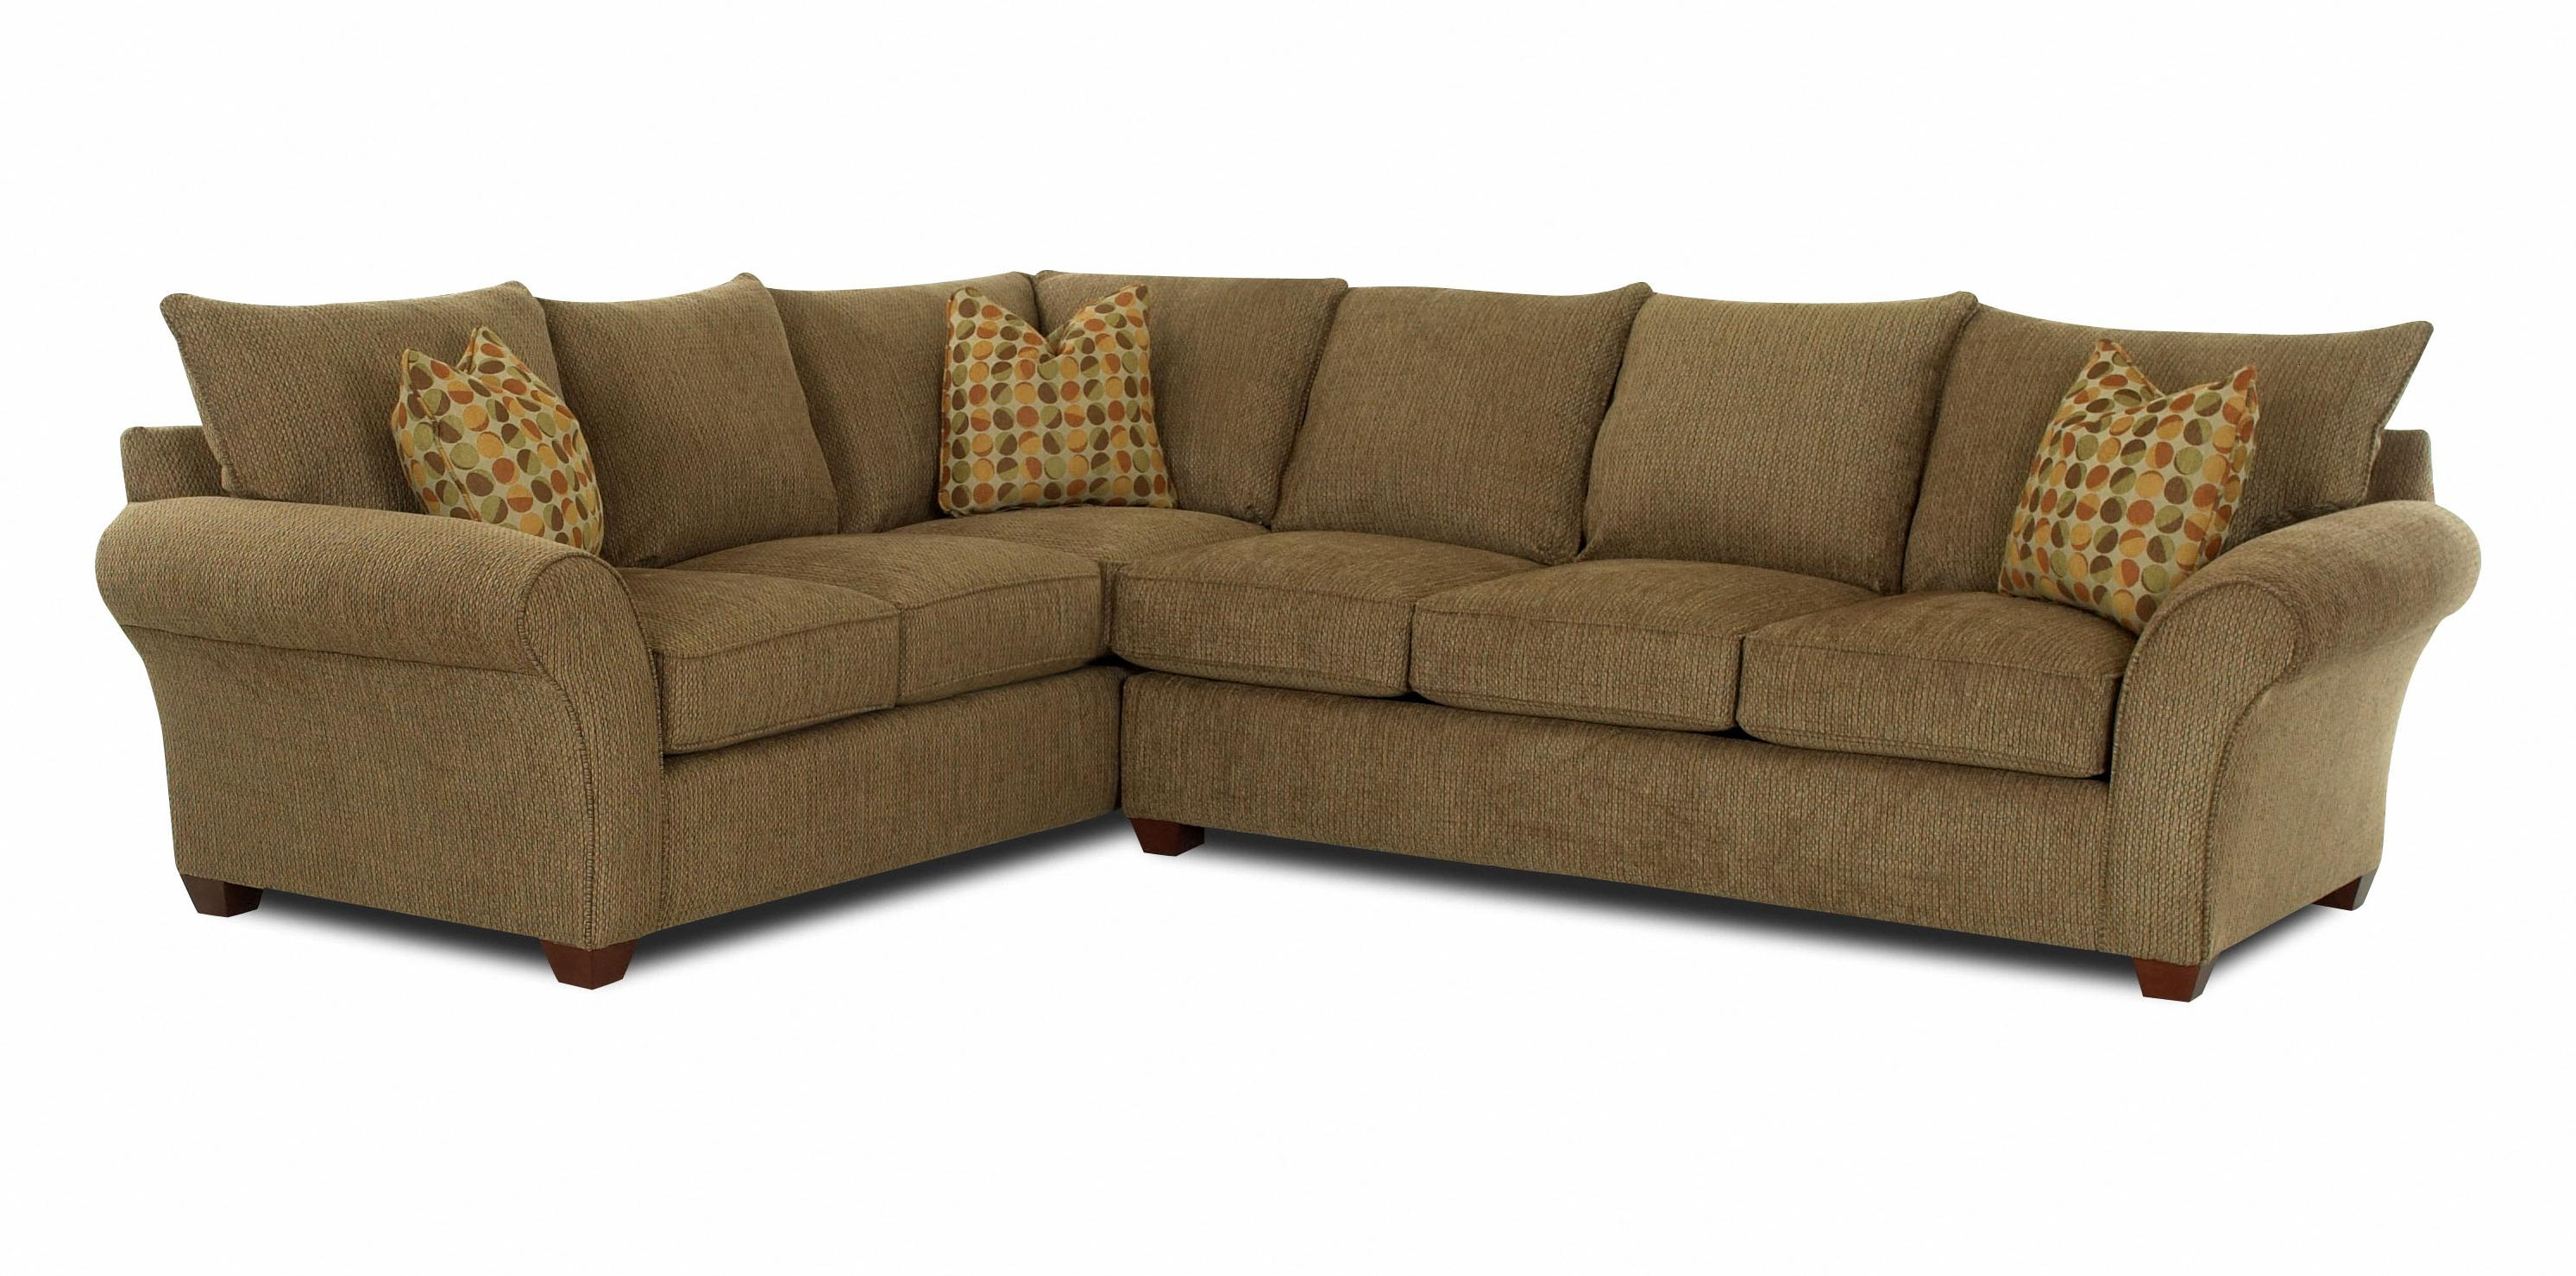 Transitional 2 piece sectional sofa by klaussner wolf for Sectional sofas gardiners